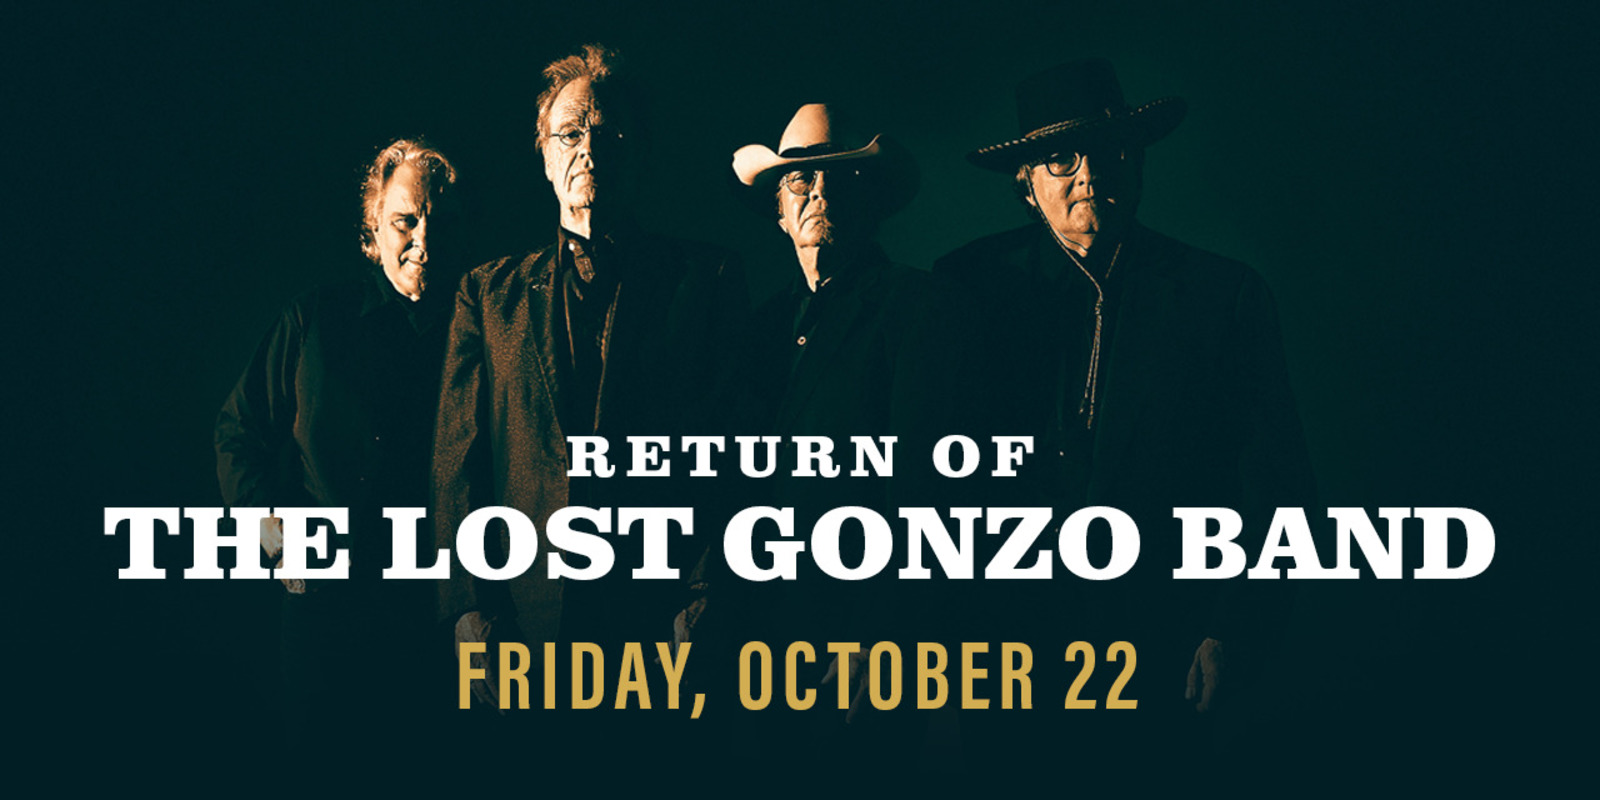 Return of The Lost Gonzo Band